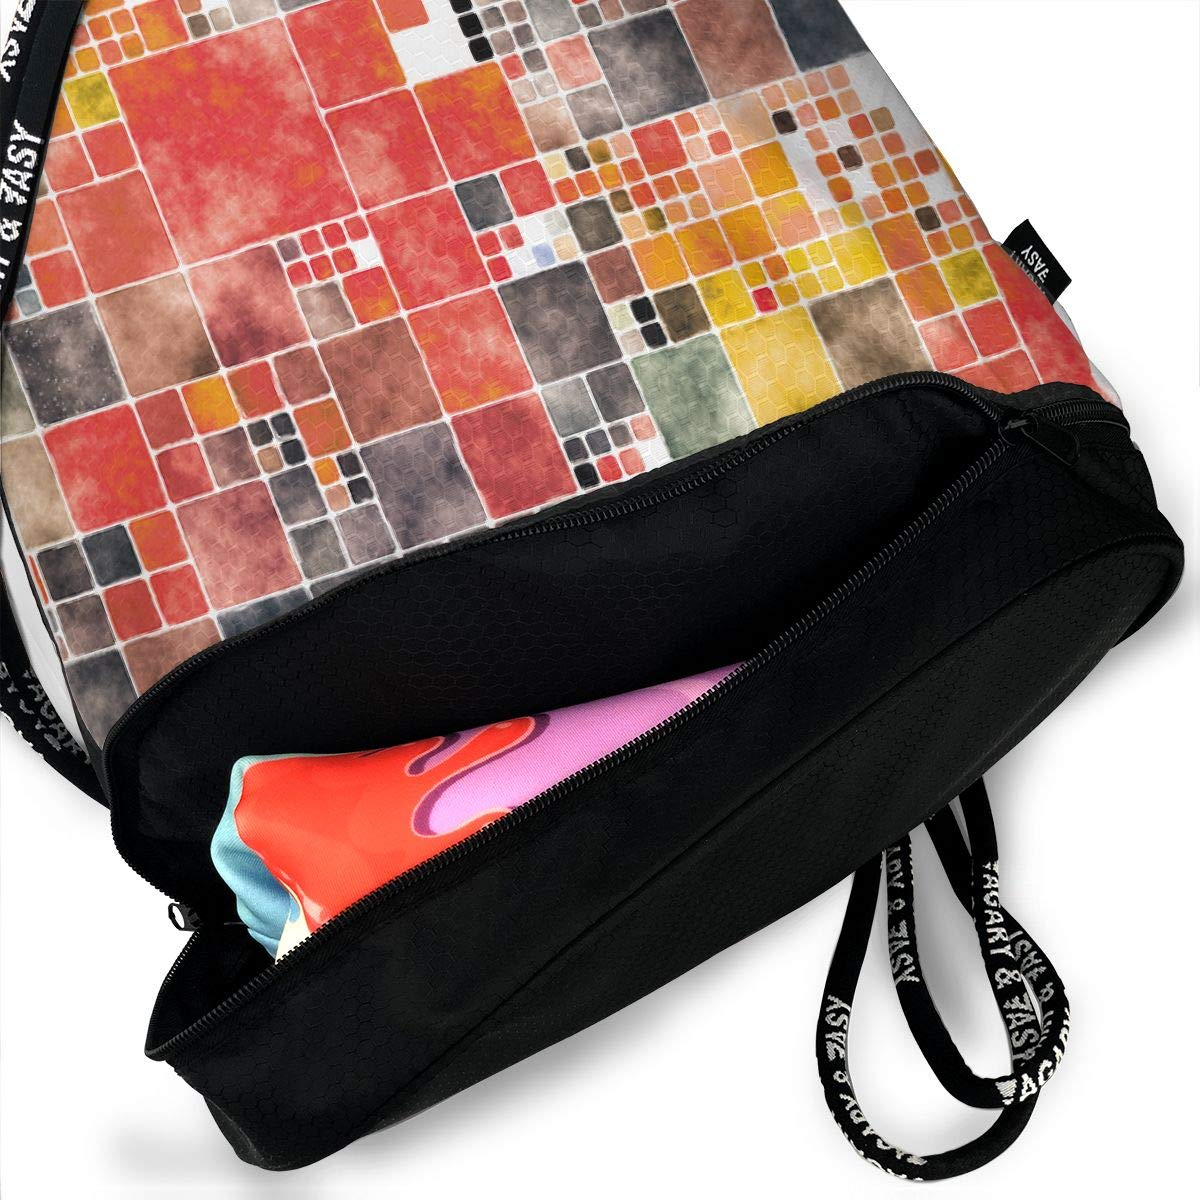 Painted Tiles 2 Drawstring Backpack Sports Athletic Gym Cinch Sack String Storage Bags for Hiking Travel Beach